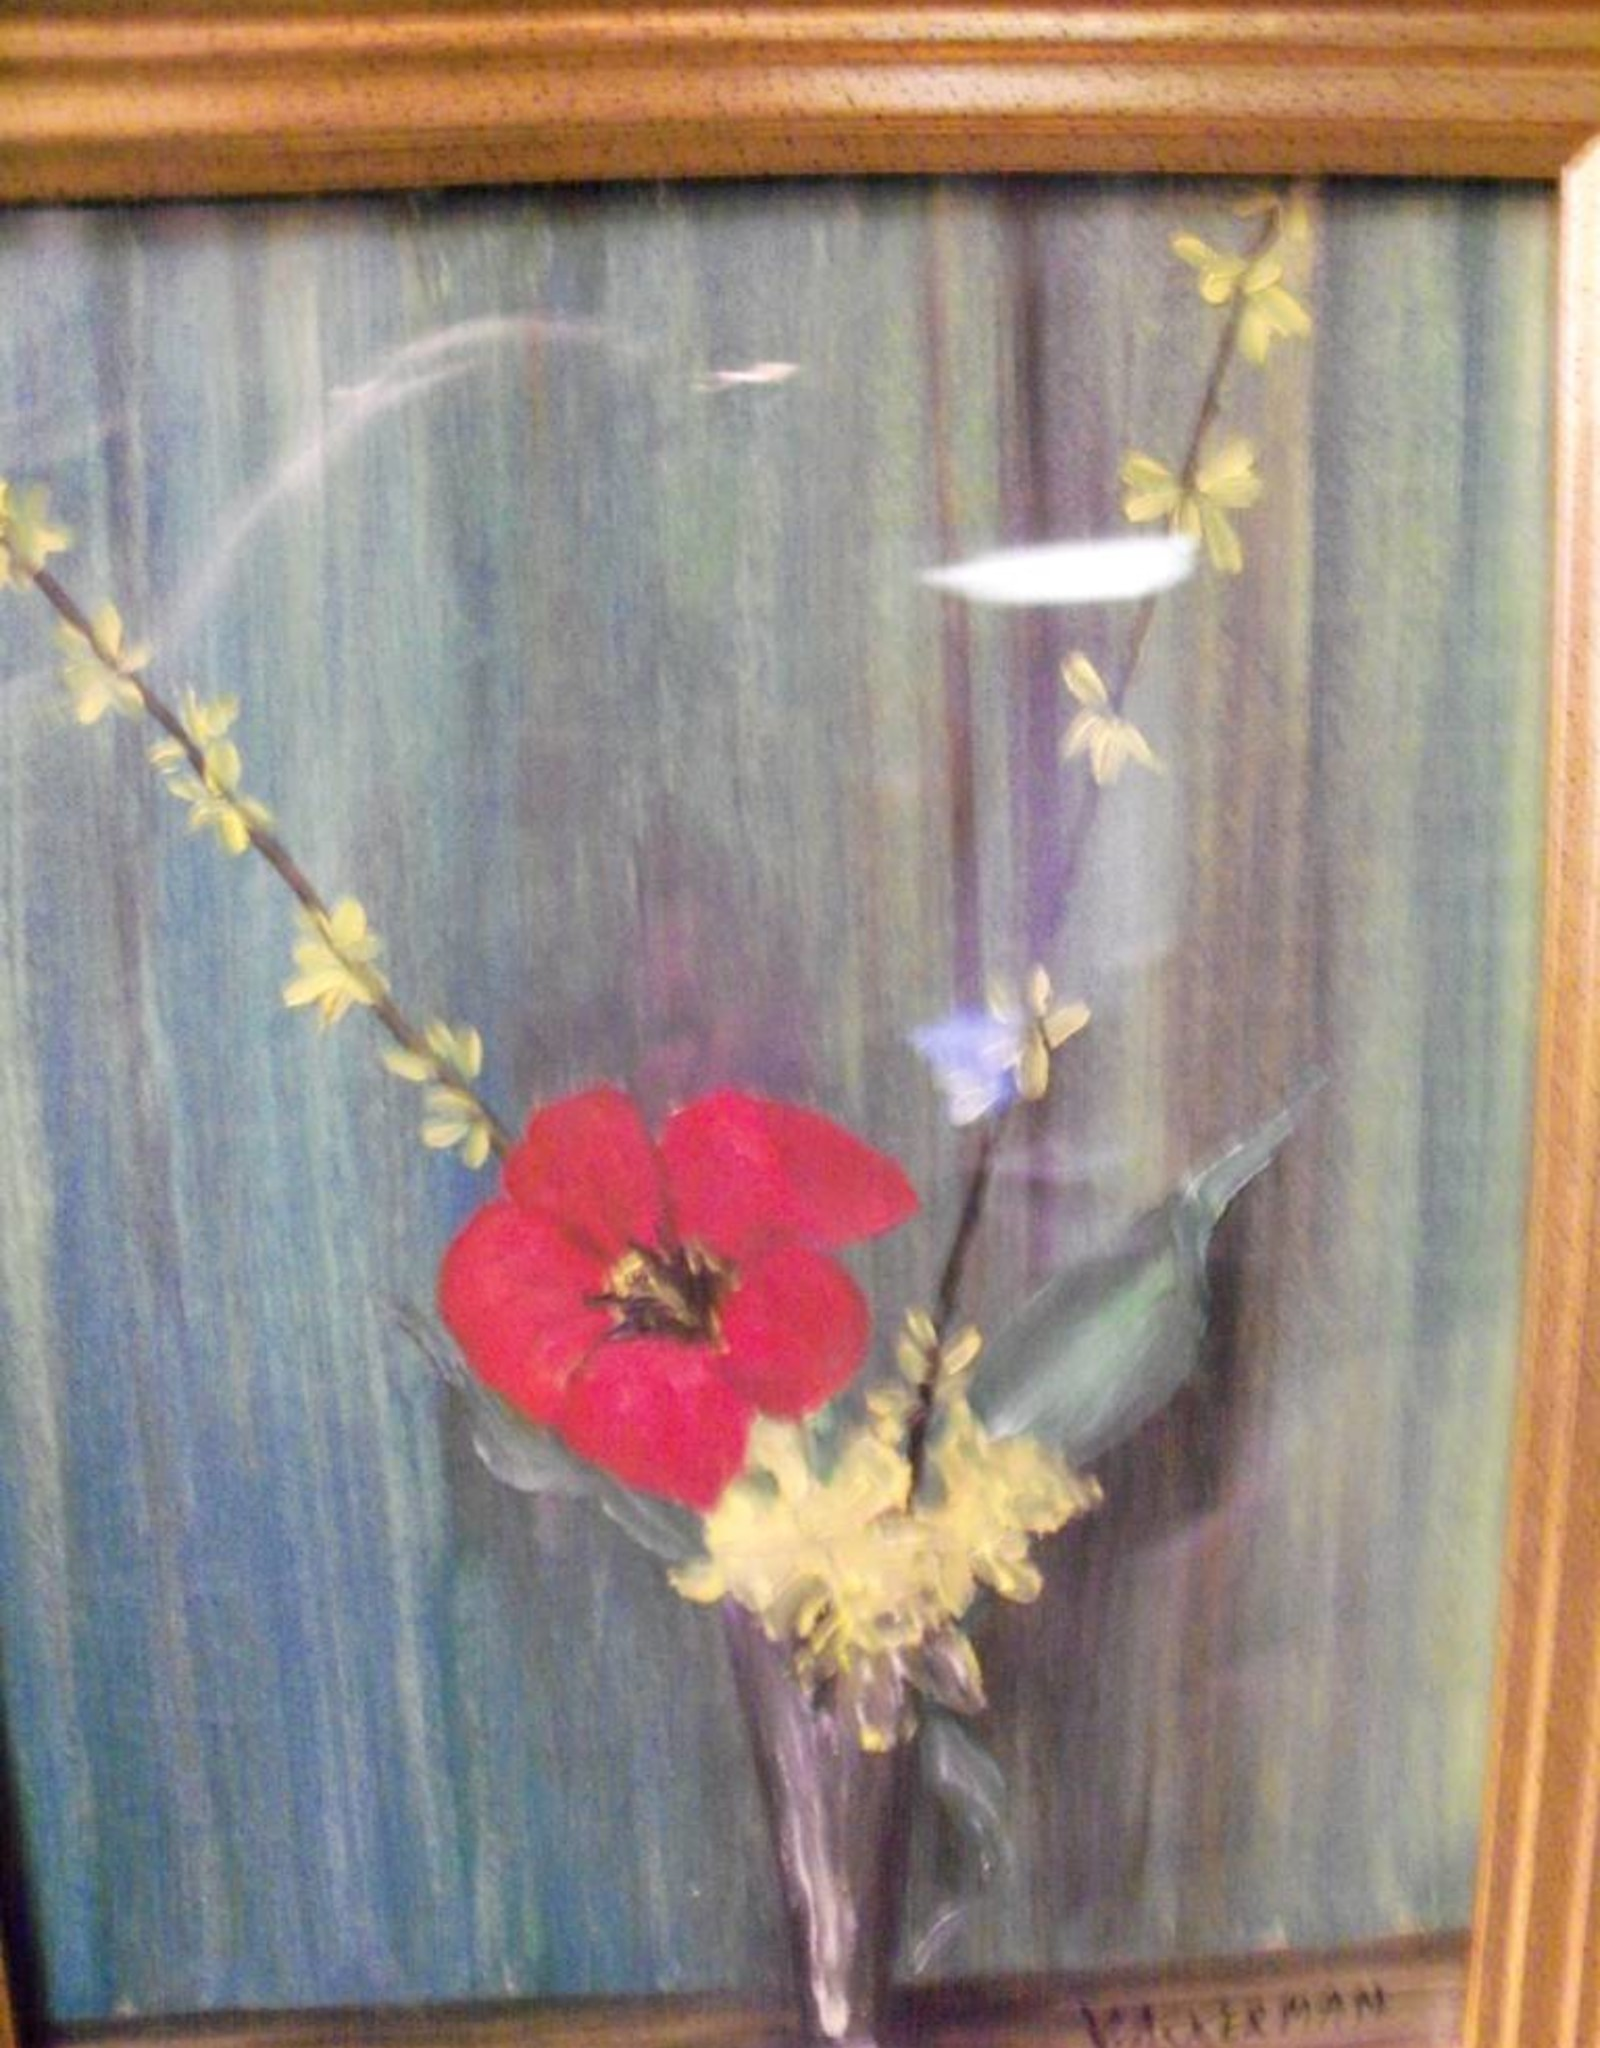 11 - Virginia Ackerman Silver Vase and Tulips Painting 8 X 10 Framed